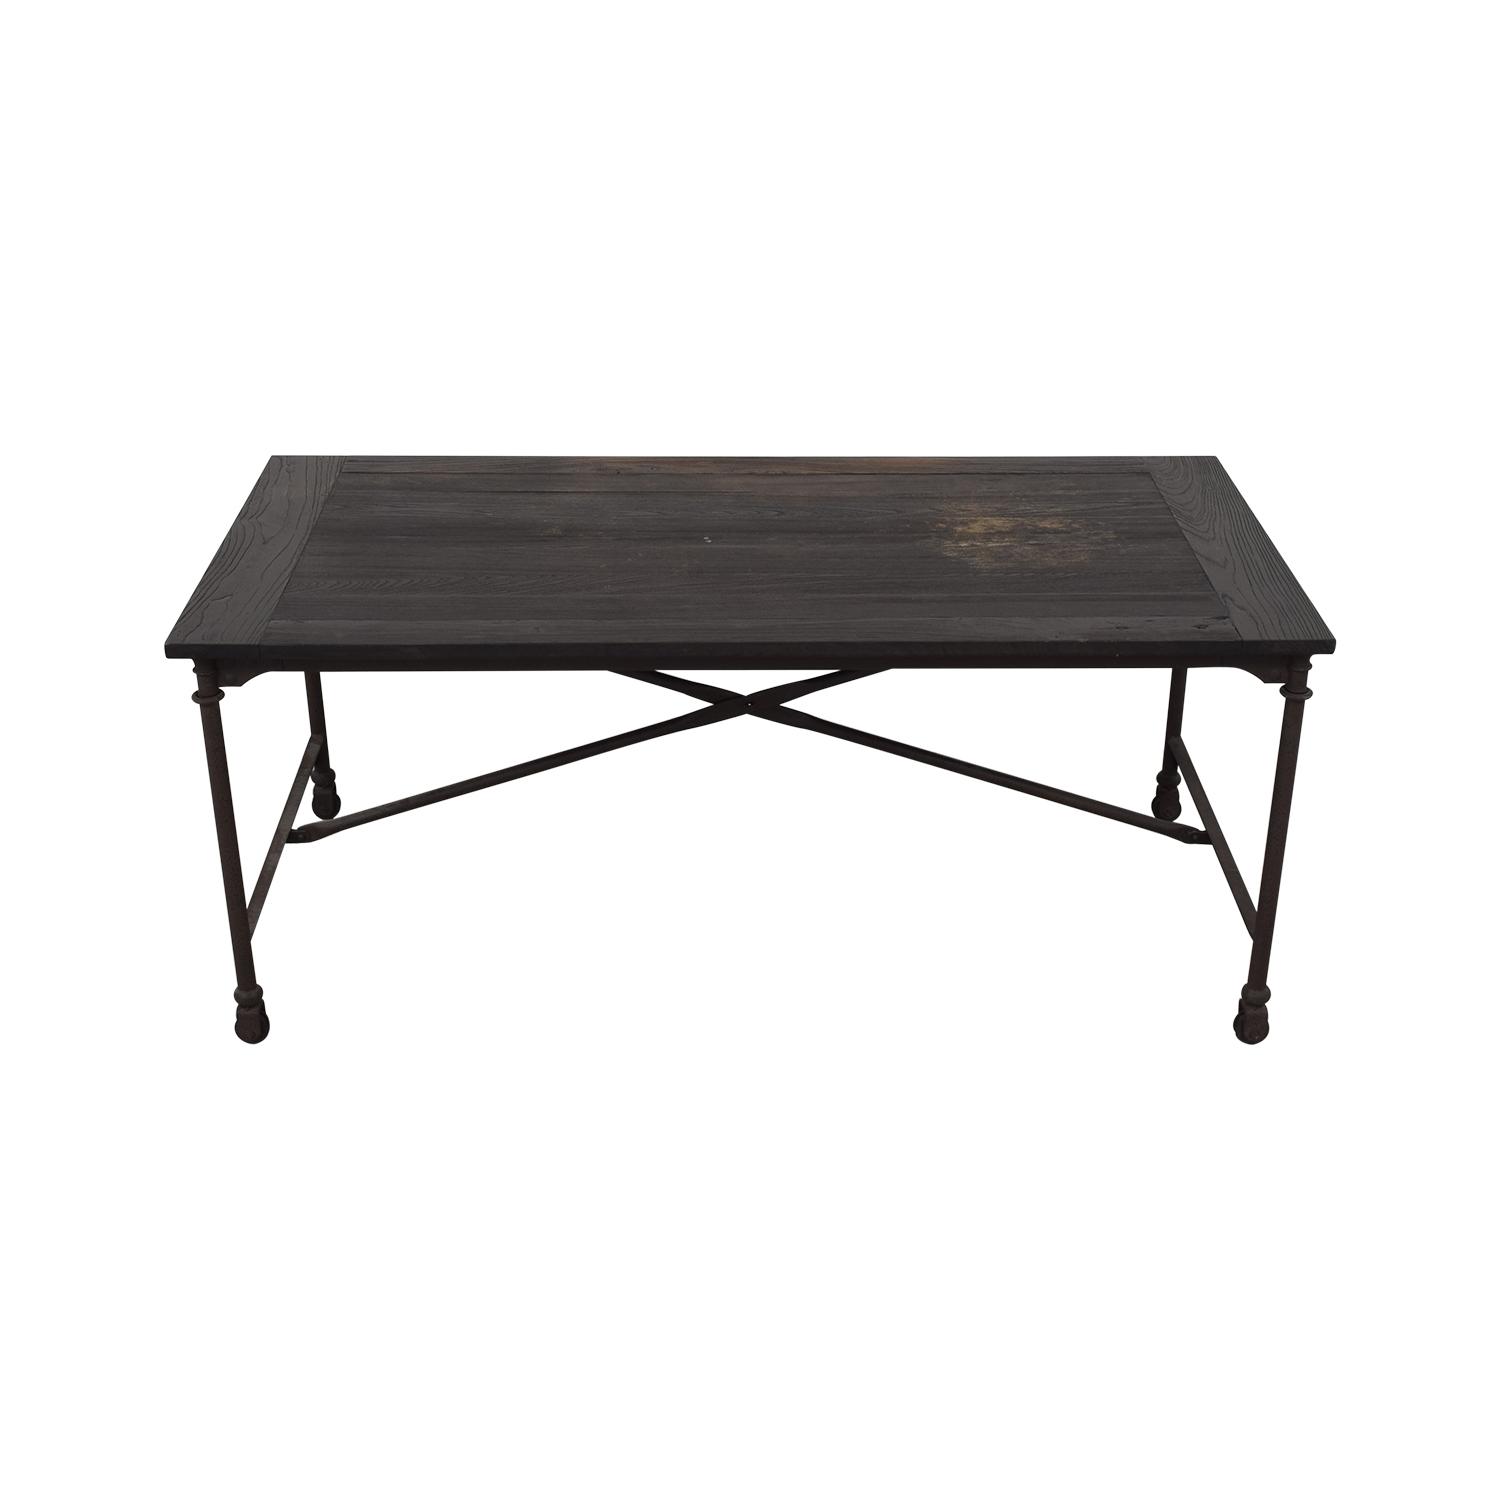 Restoration Hardware Restoration Hardware Flatiron Desk for sale